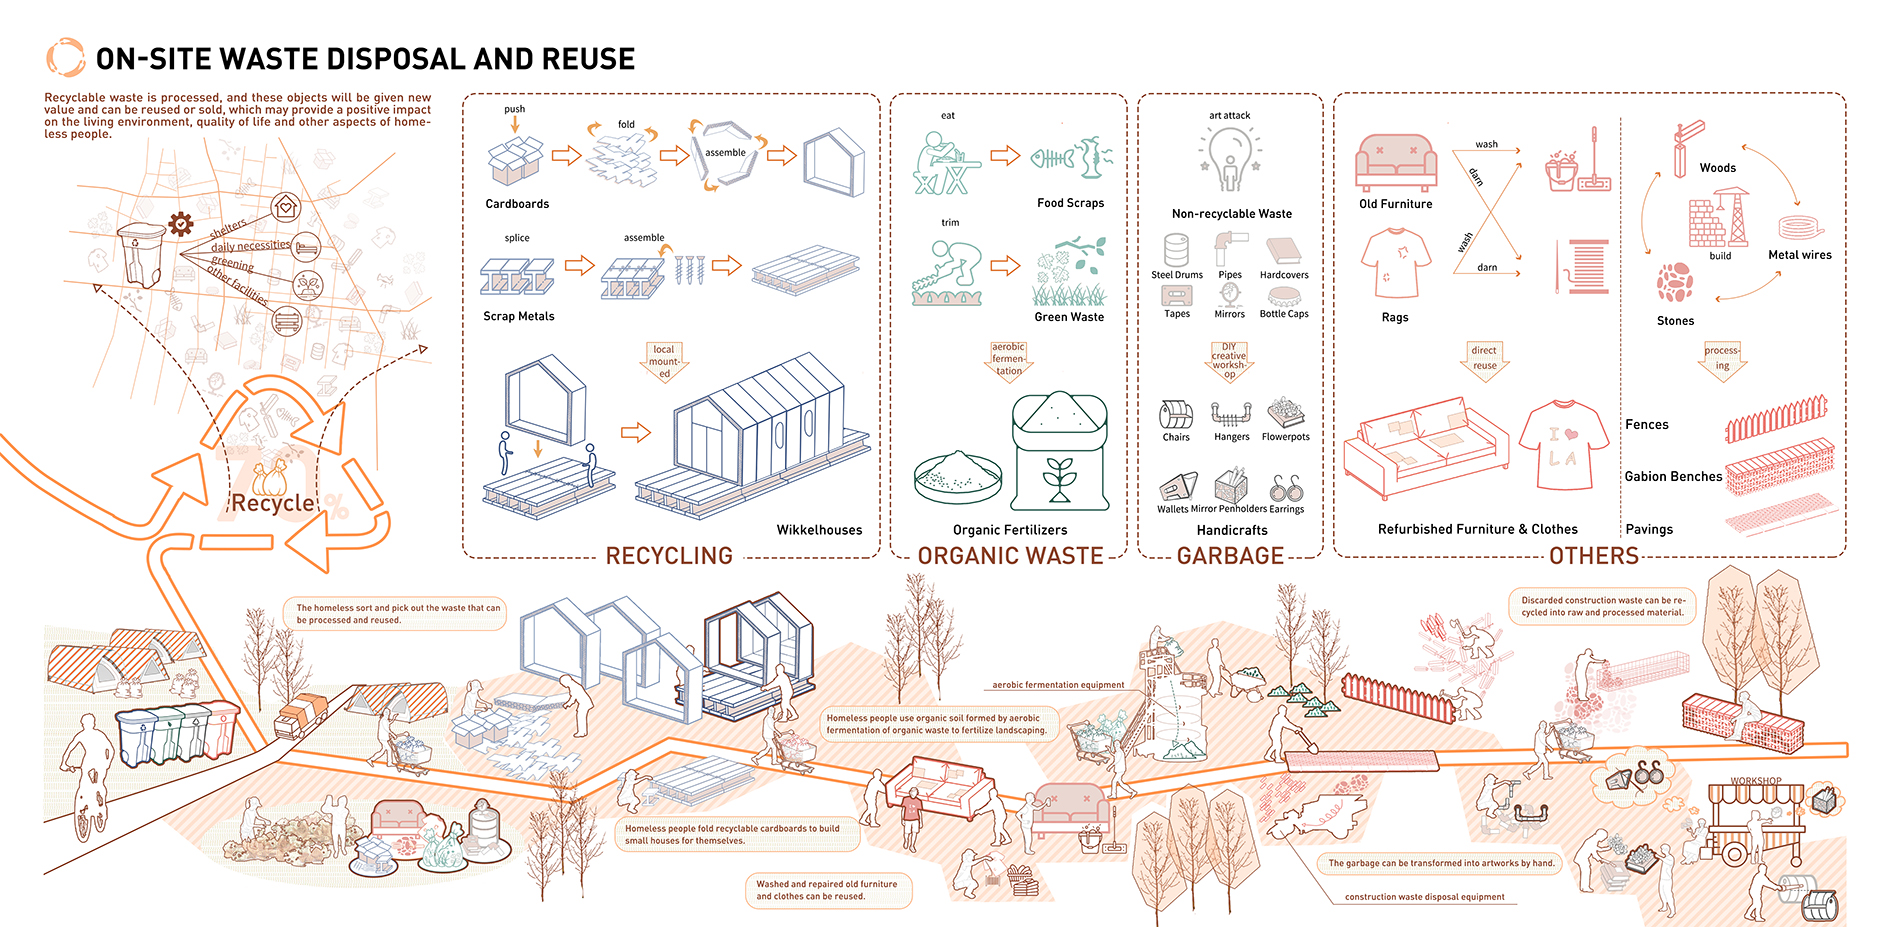 On-site waste disposal and reuse